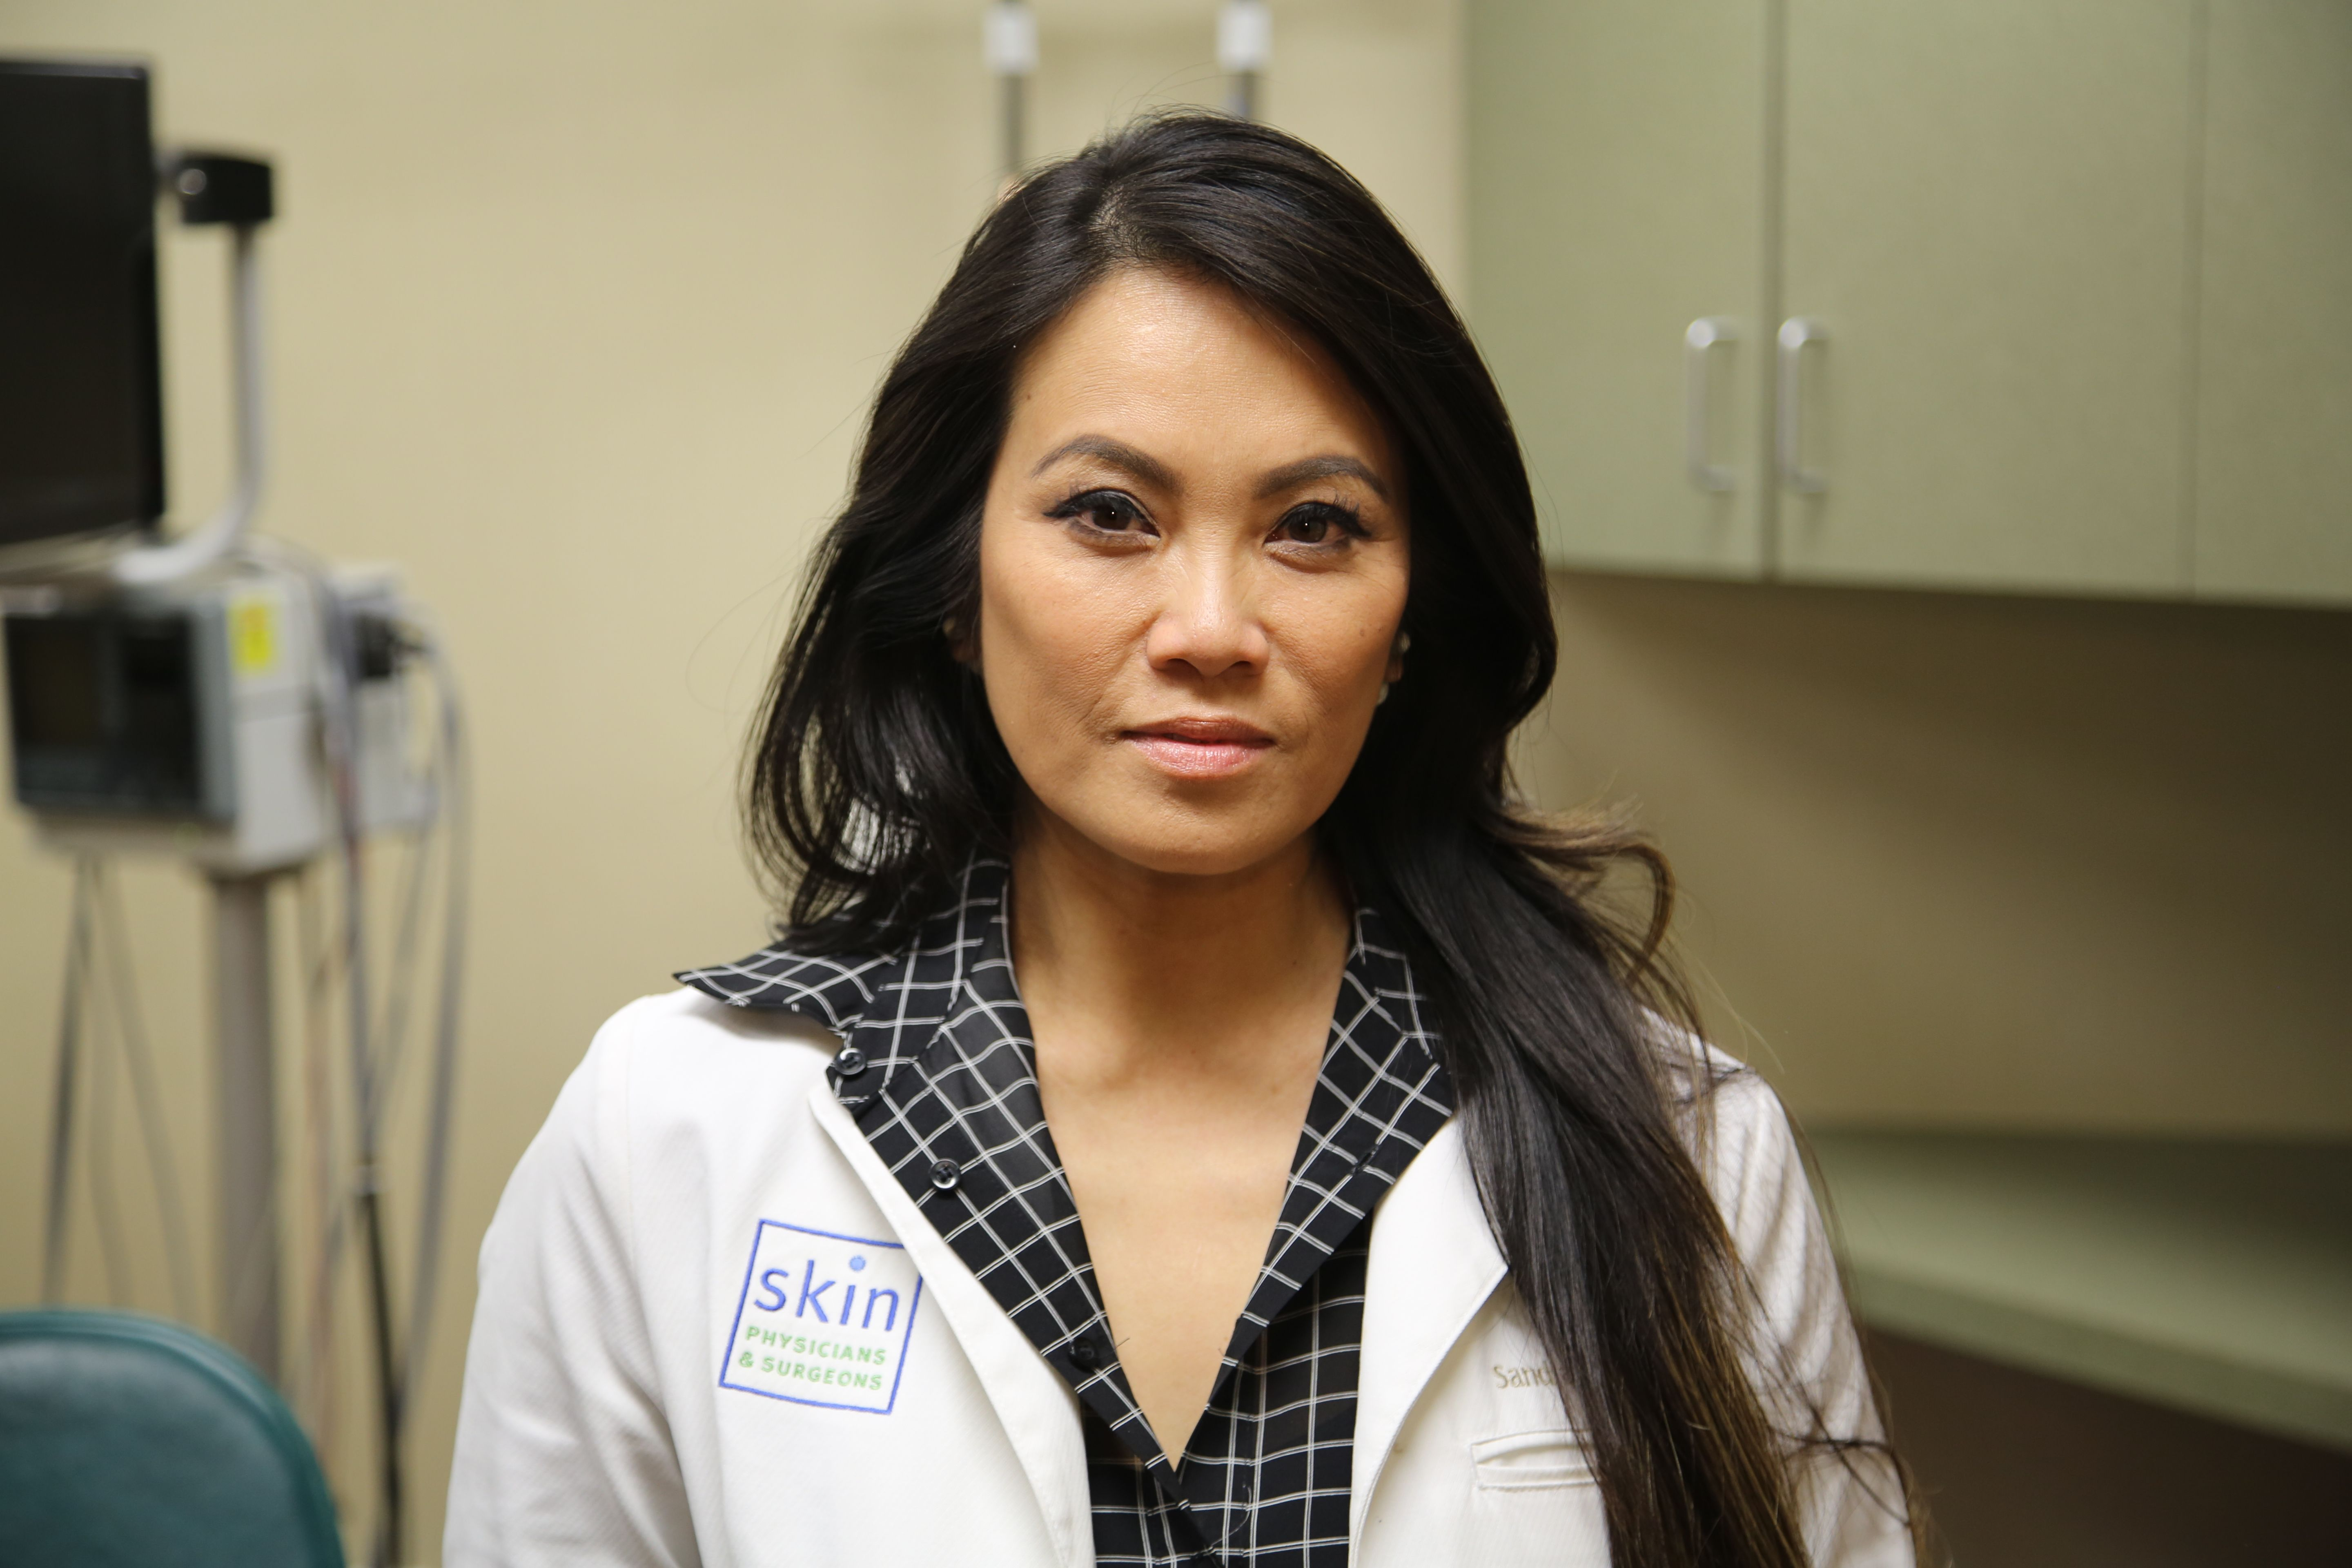 Dr. Pimple Popper Just Extracted a Giant, Juicy Lipoma in This New Video